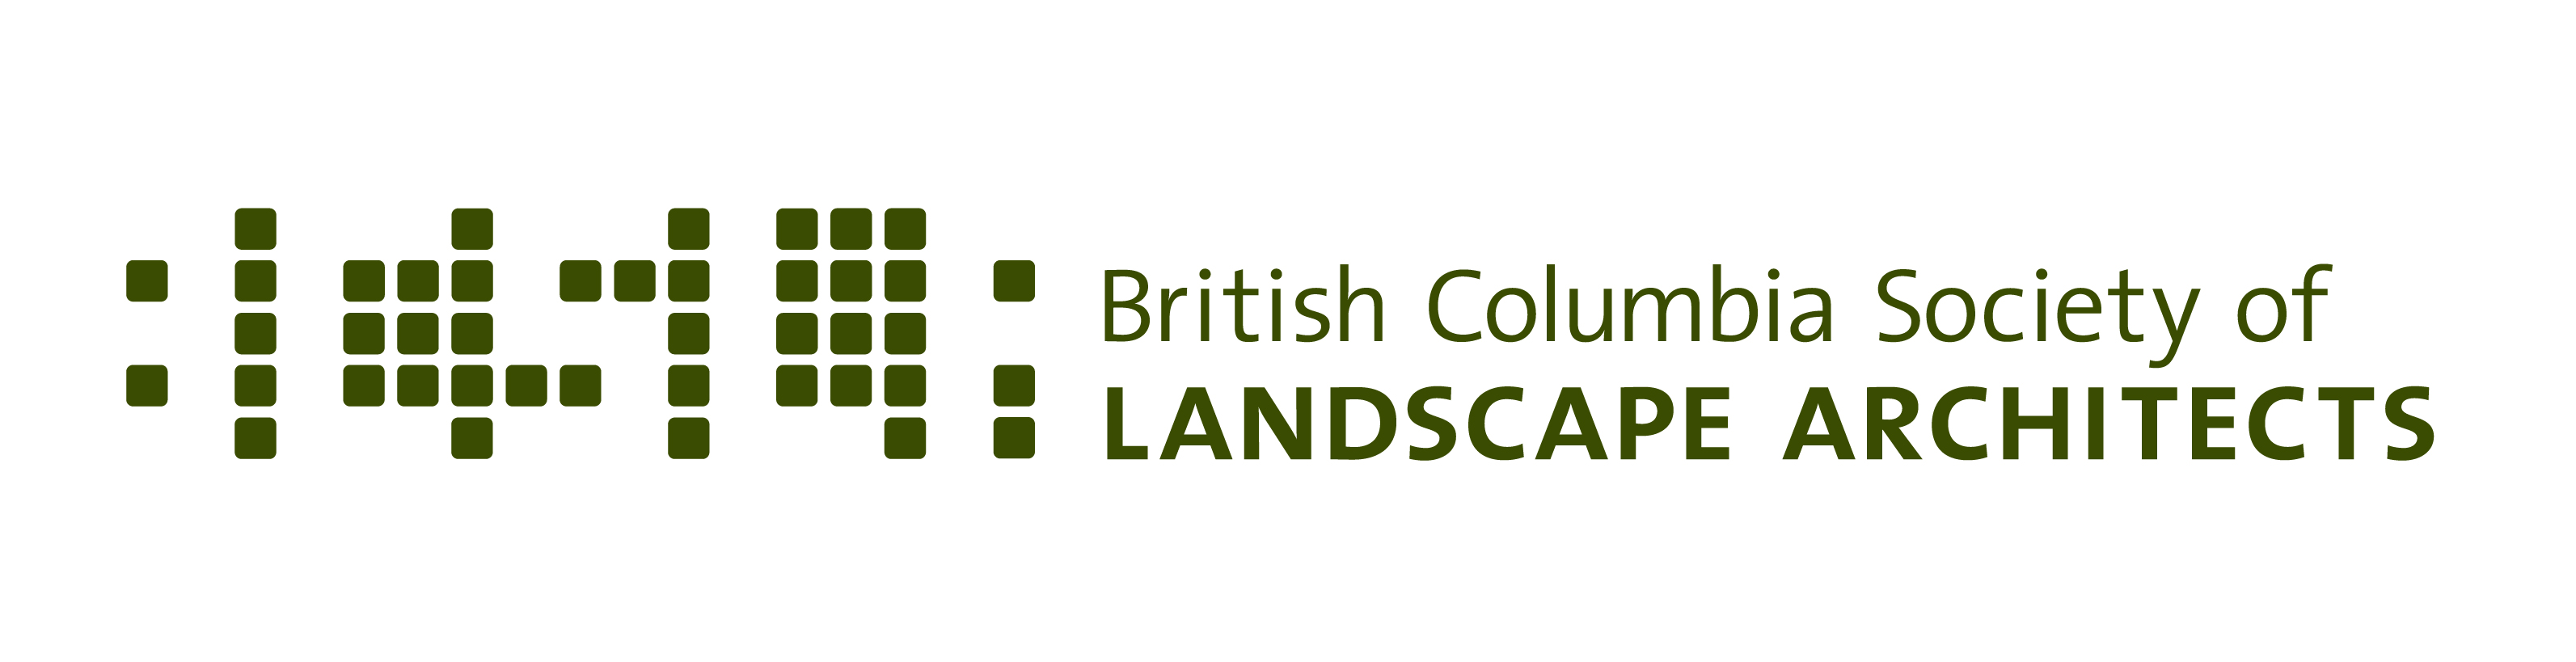 BCLandscape_Architects_logo.jpg